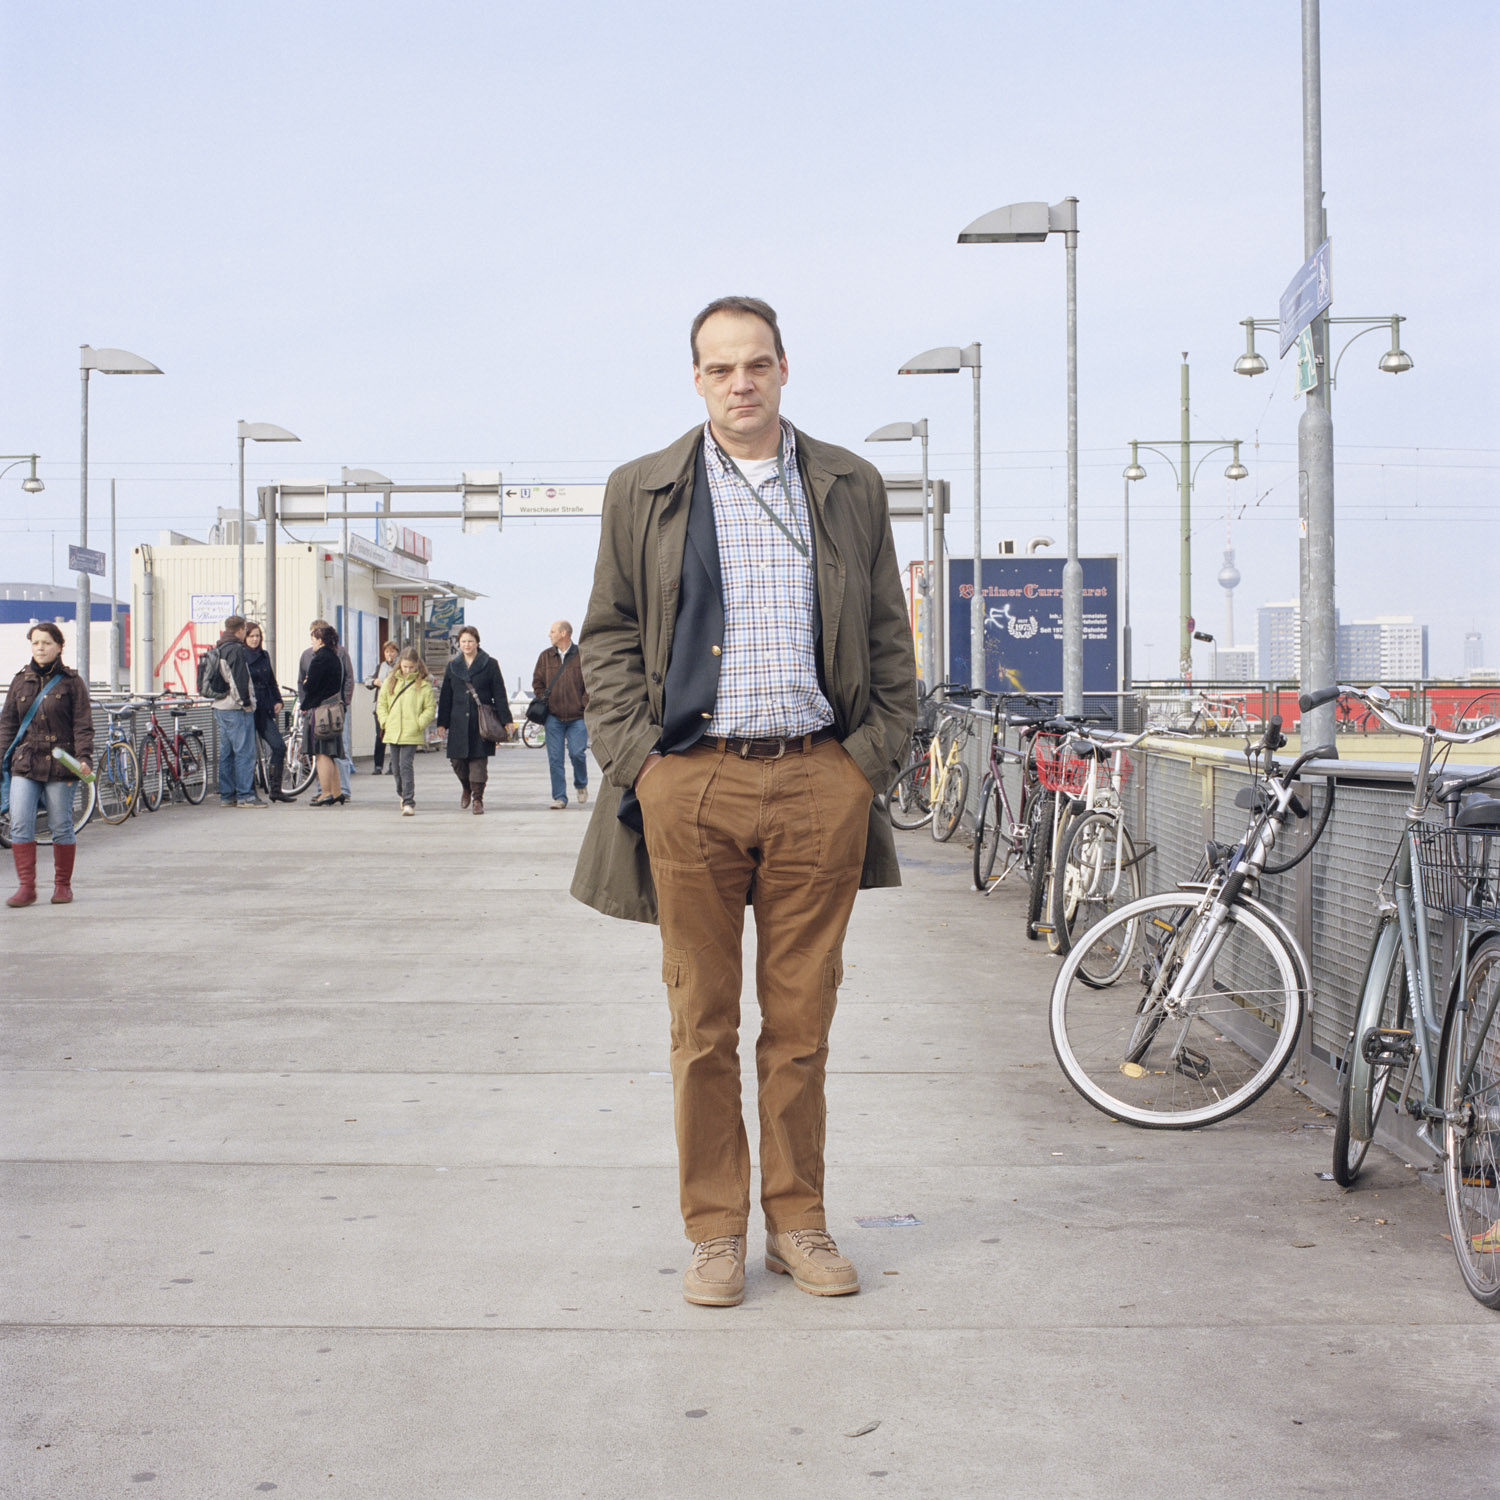 Andreas, 2008, from Berlin Project by Abby Storey